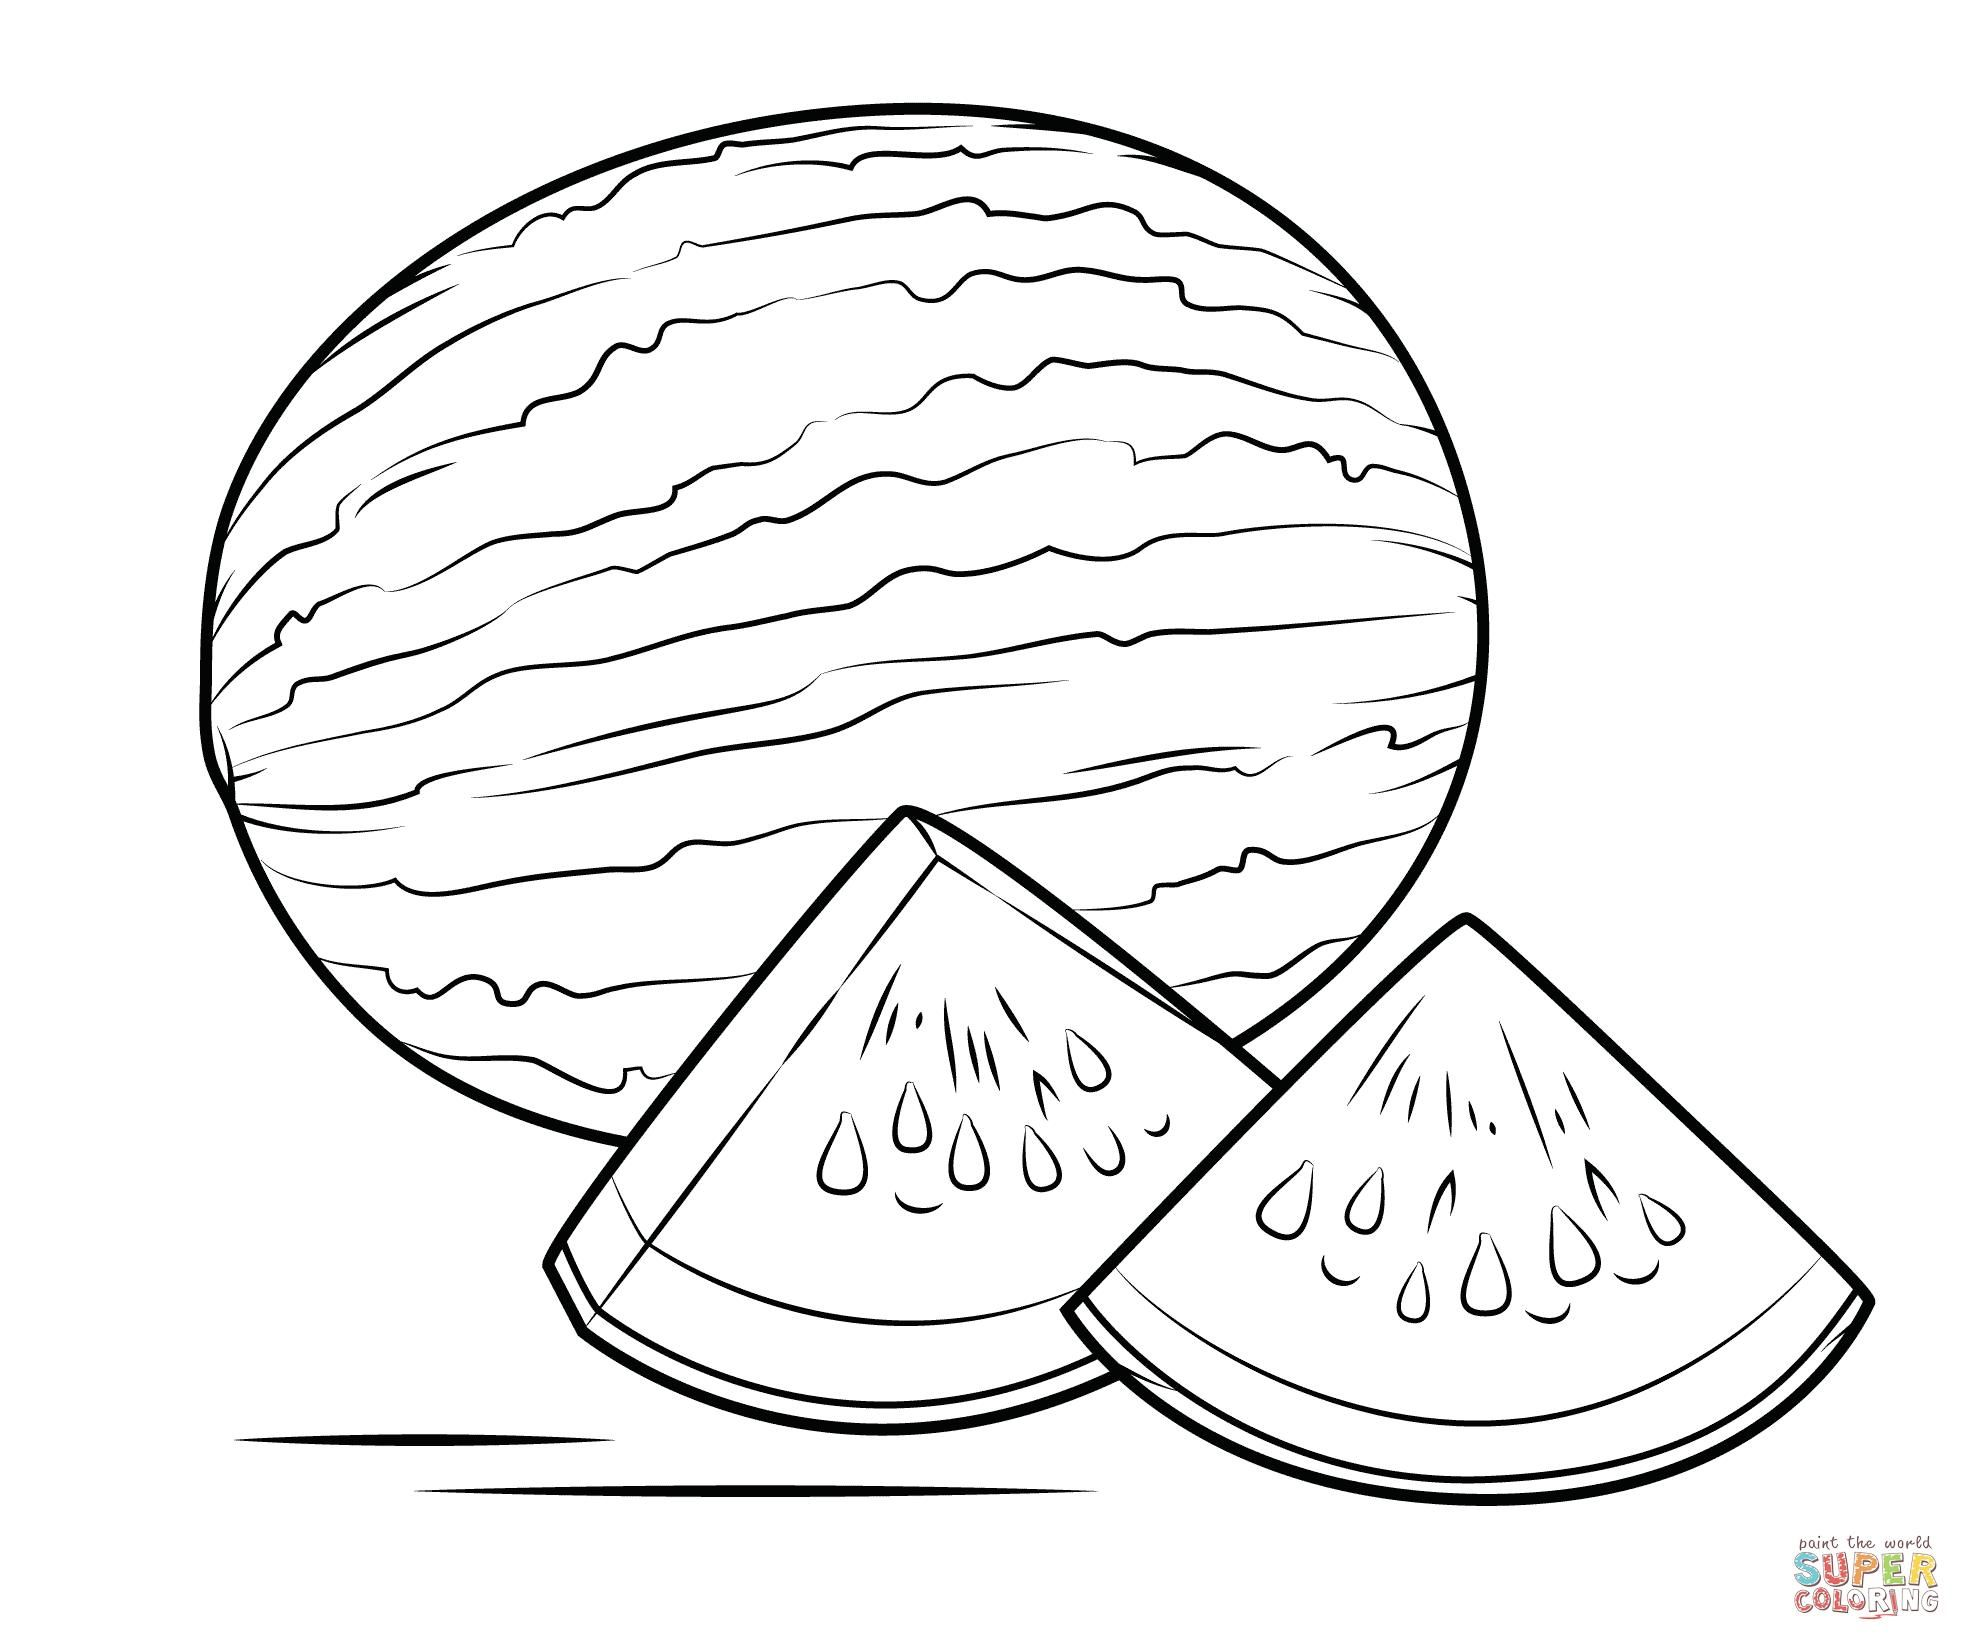 10 Coloring Page Watermelon In 2020 Coloring Pages Printable Coloring Free Coloring Pages